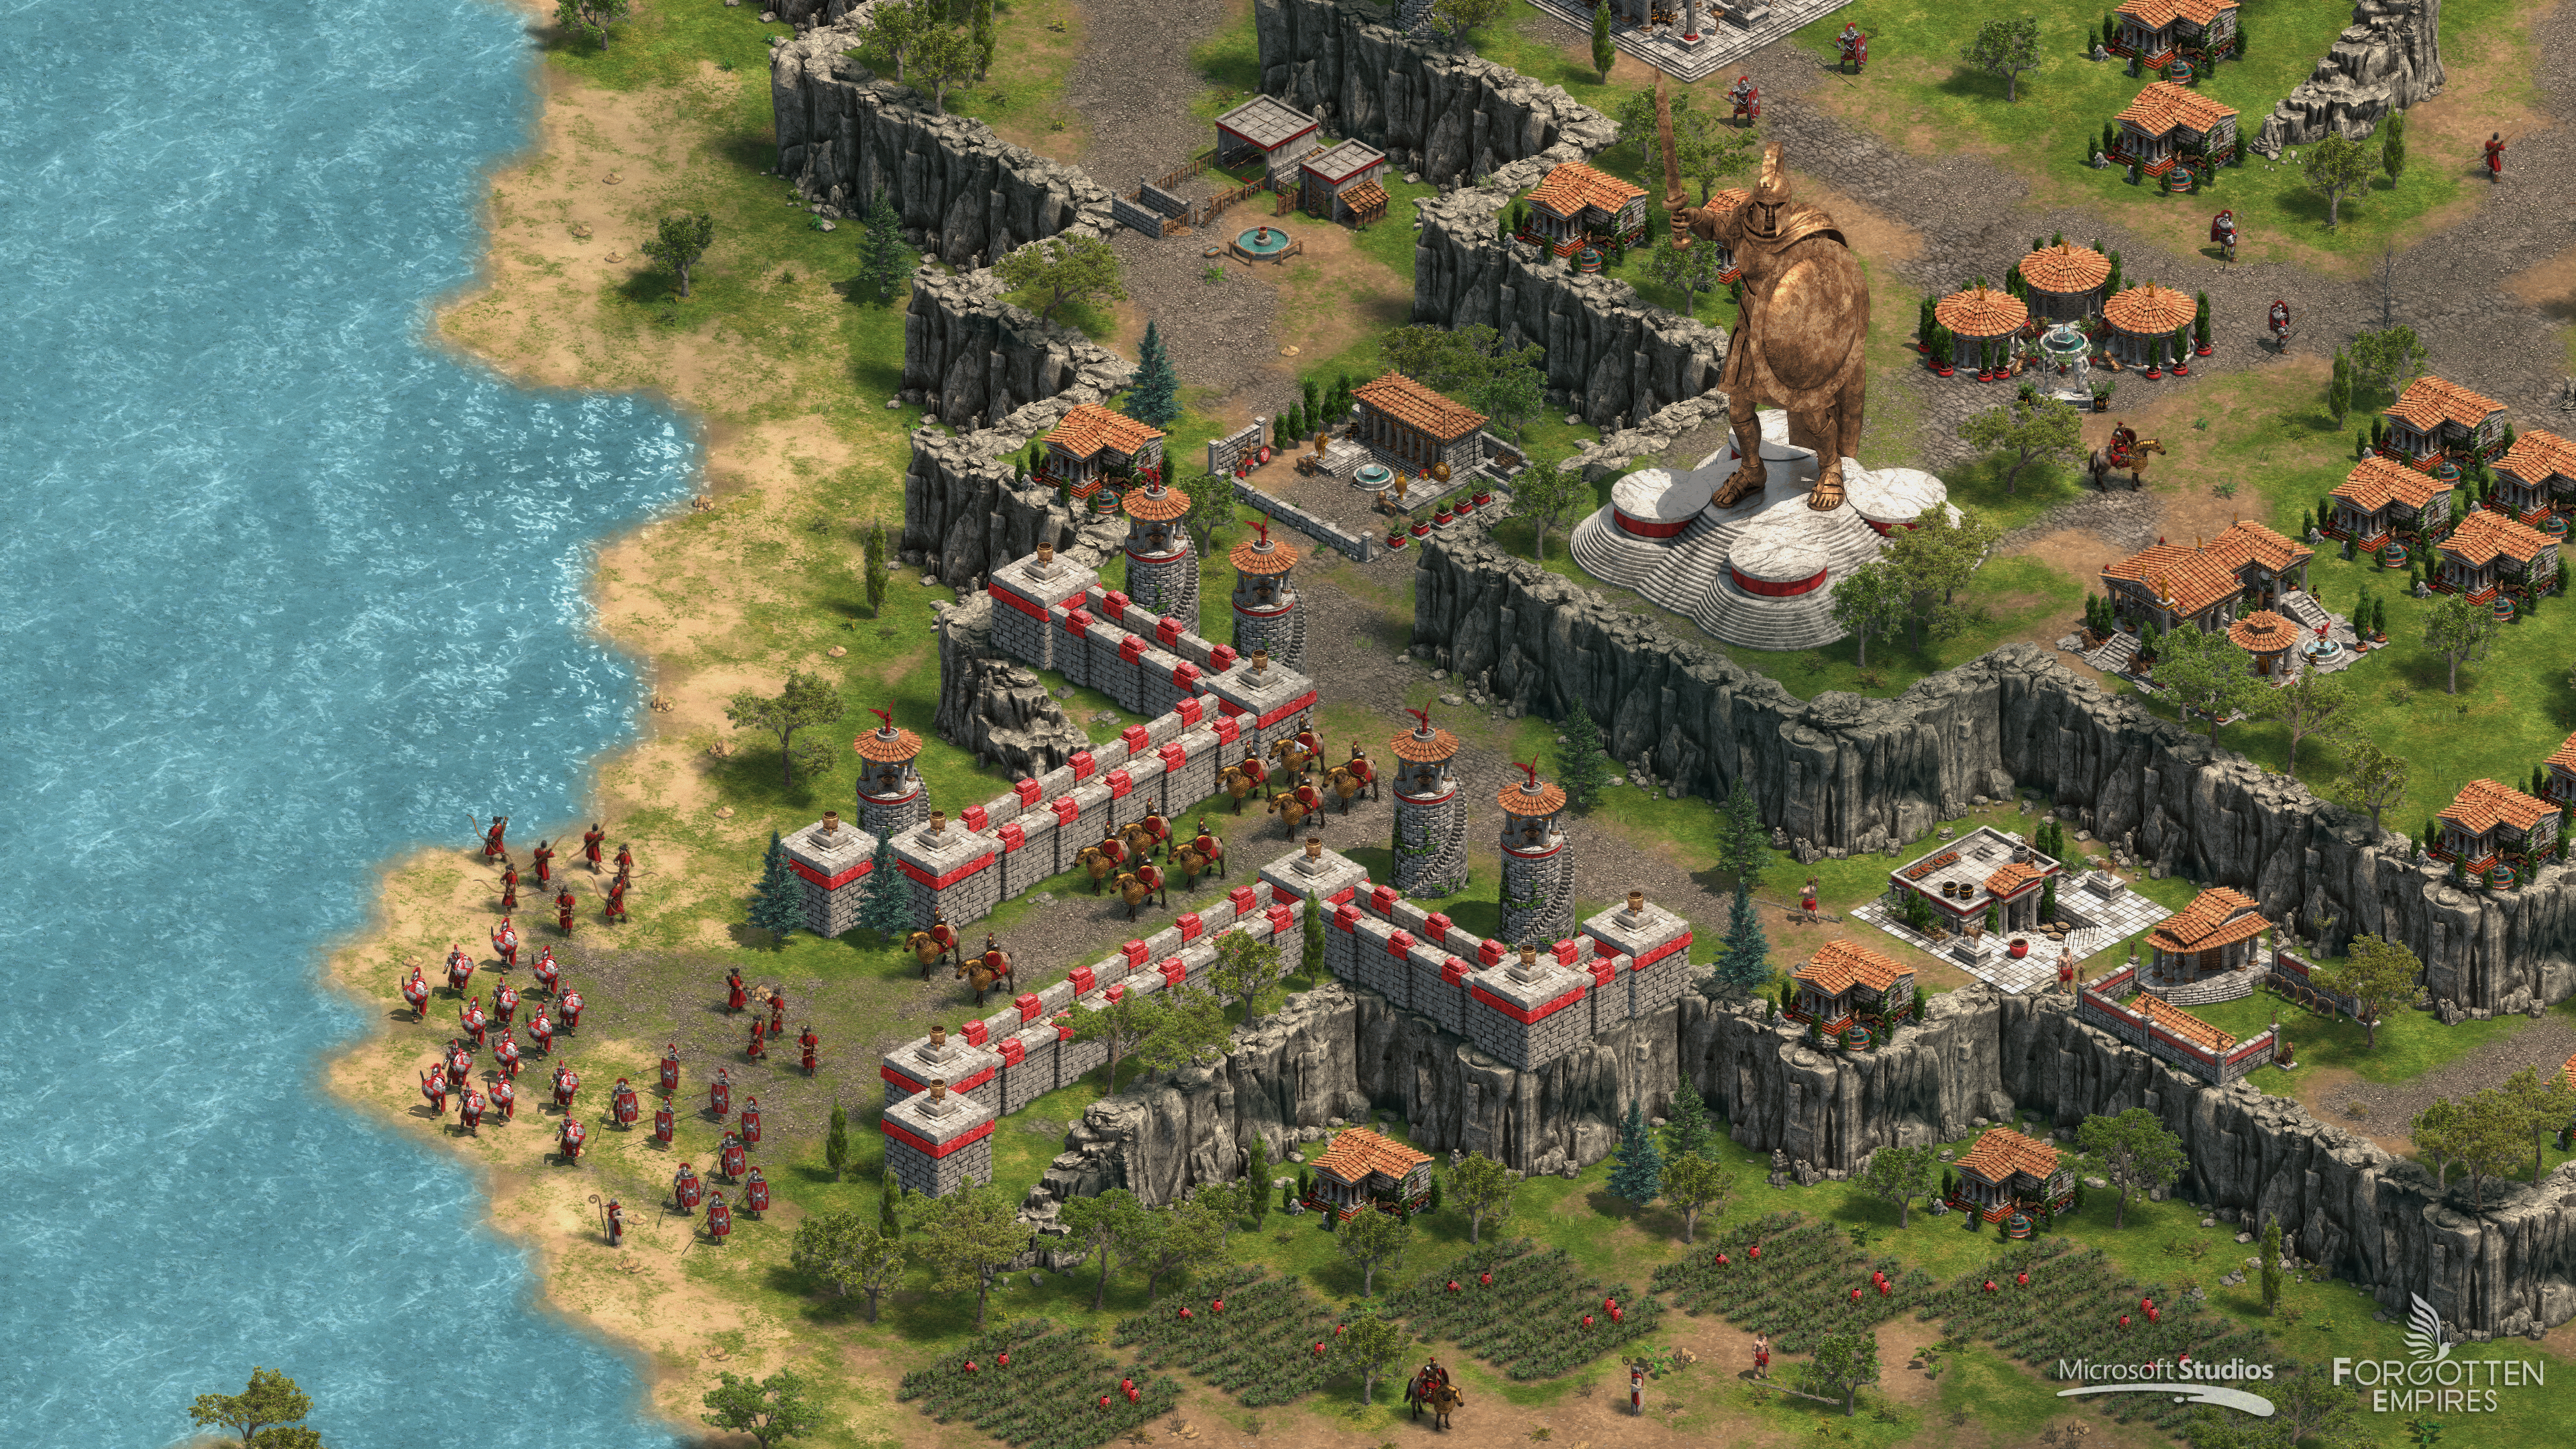 http://www.forgottenempires.net/wp-content/uploads/age_of_empires_definitive_edition_screenshot_the_colossus_.png